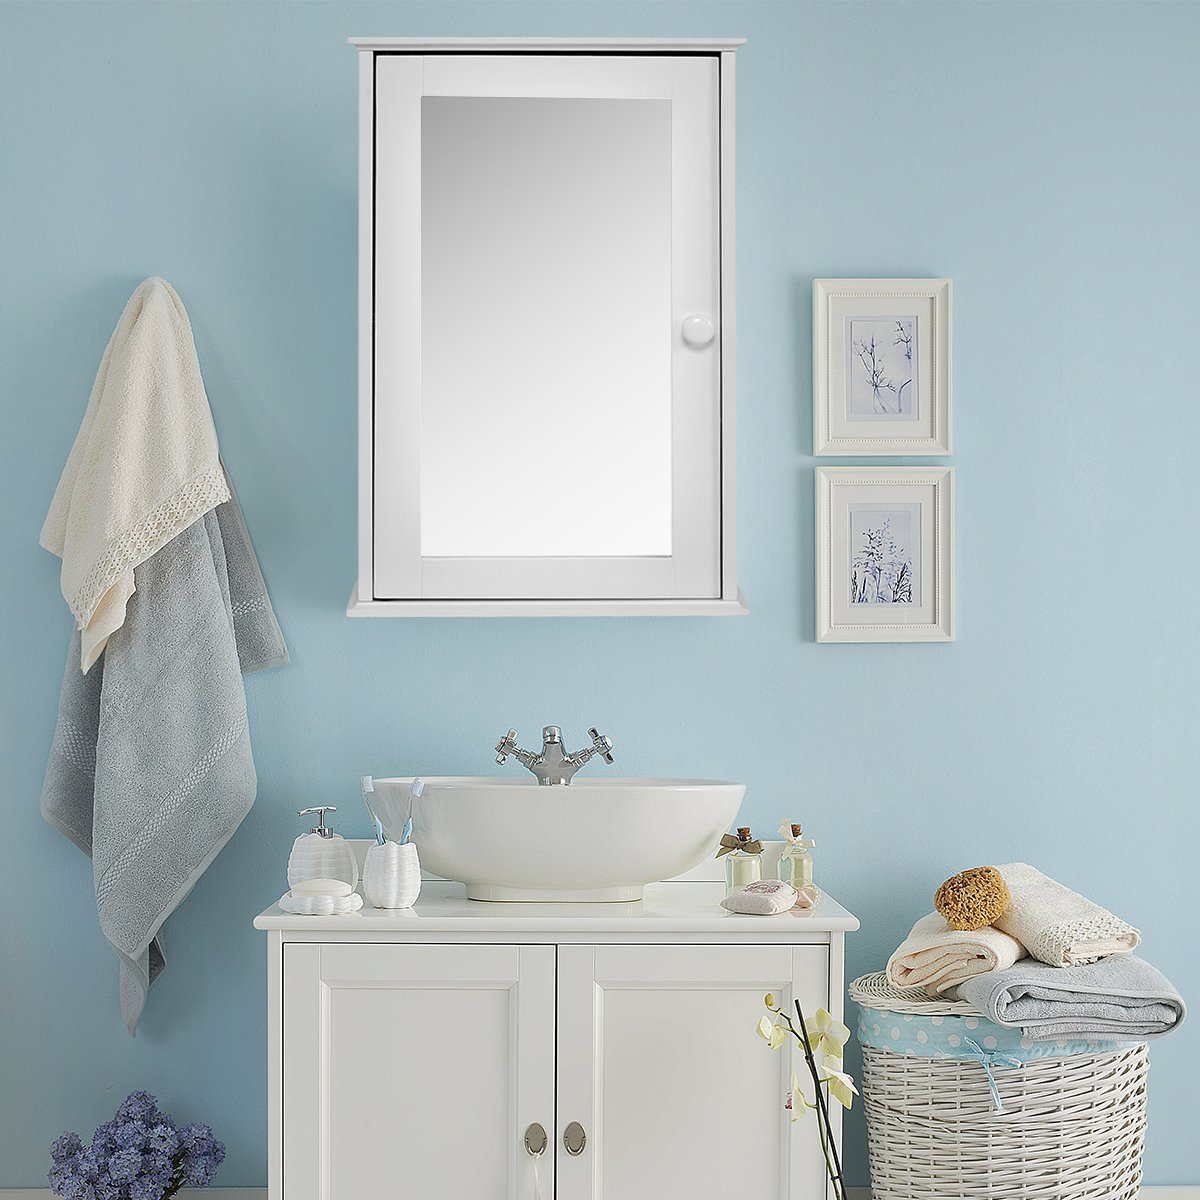 TANGKULA Mirrored Bathroom Cabinet Wall Mount Storage Organizer Medicine Cabinet with Single Doors White (White) by TANGKULA